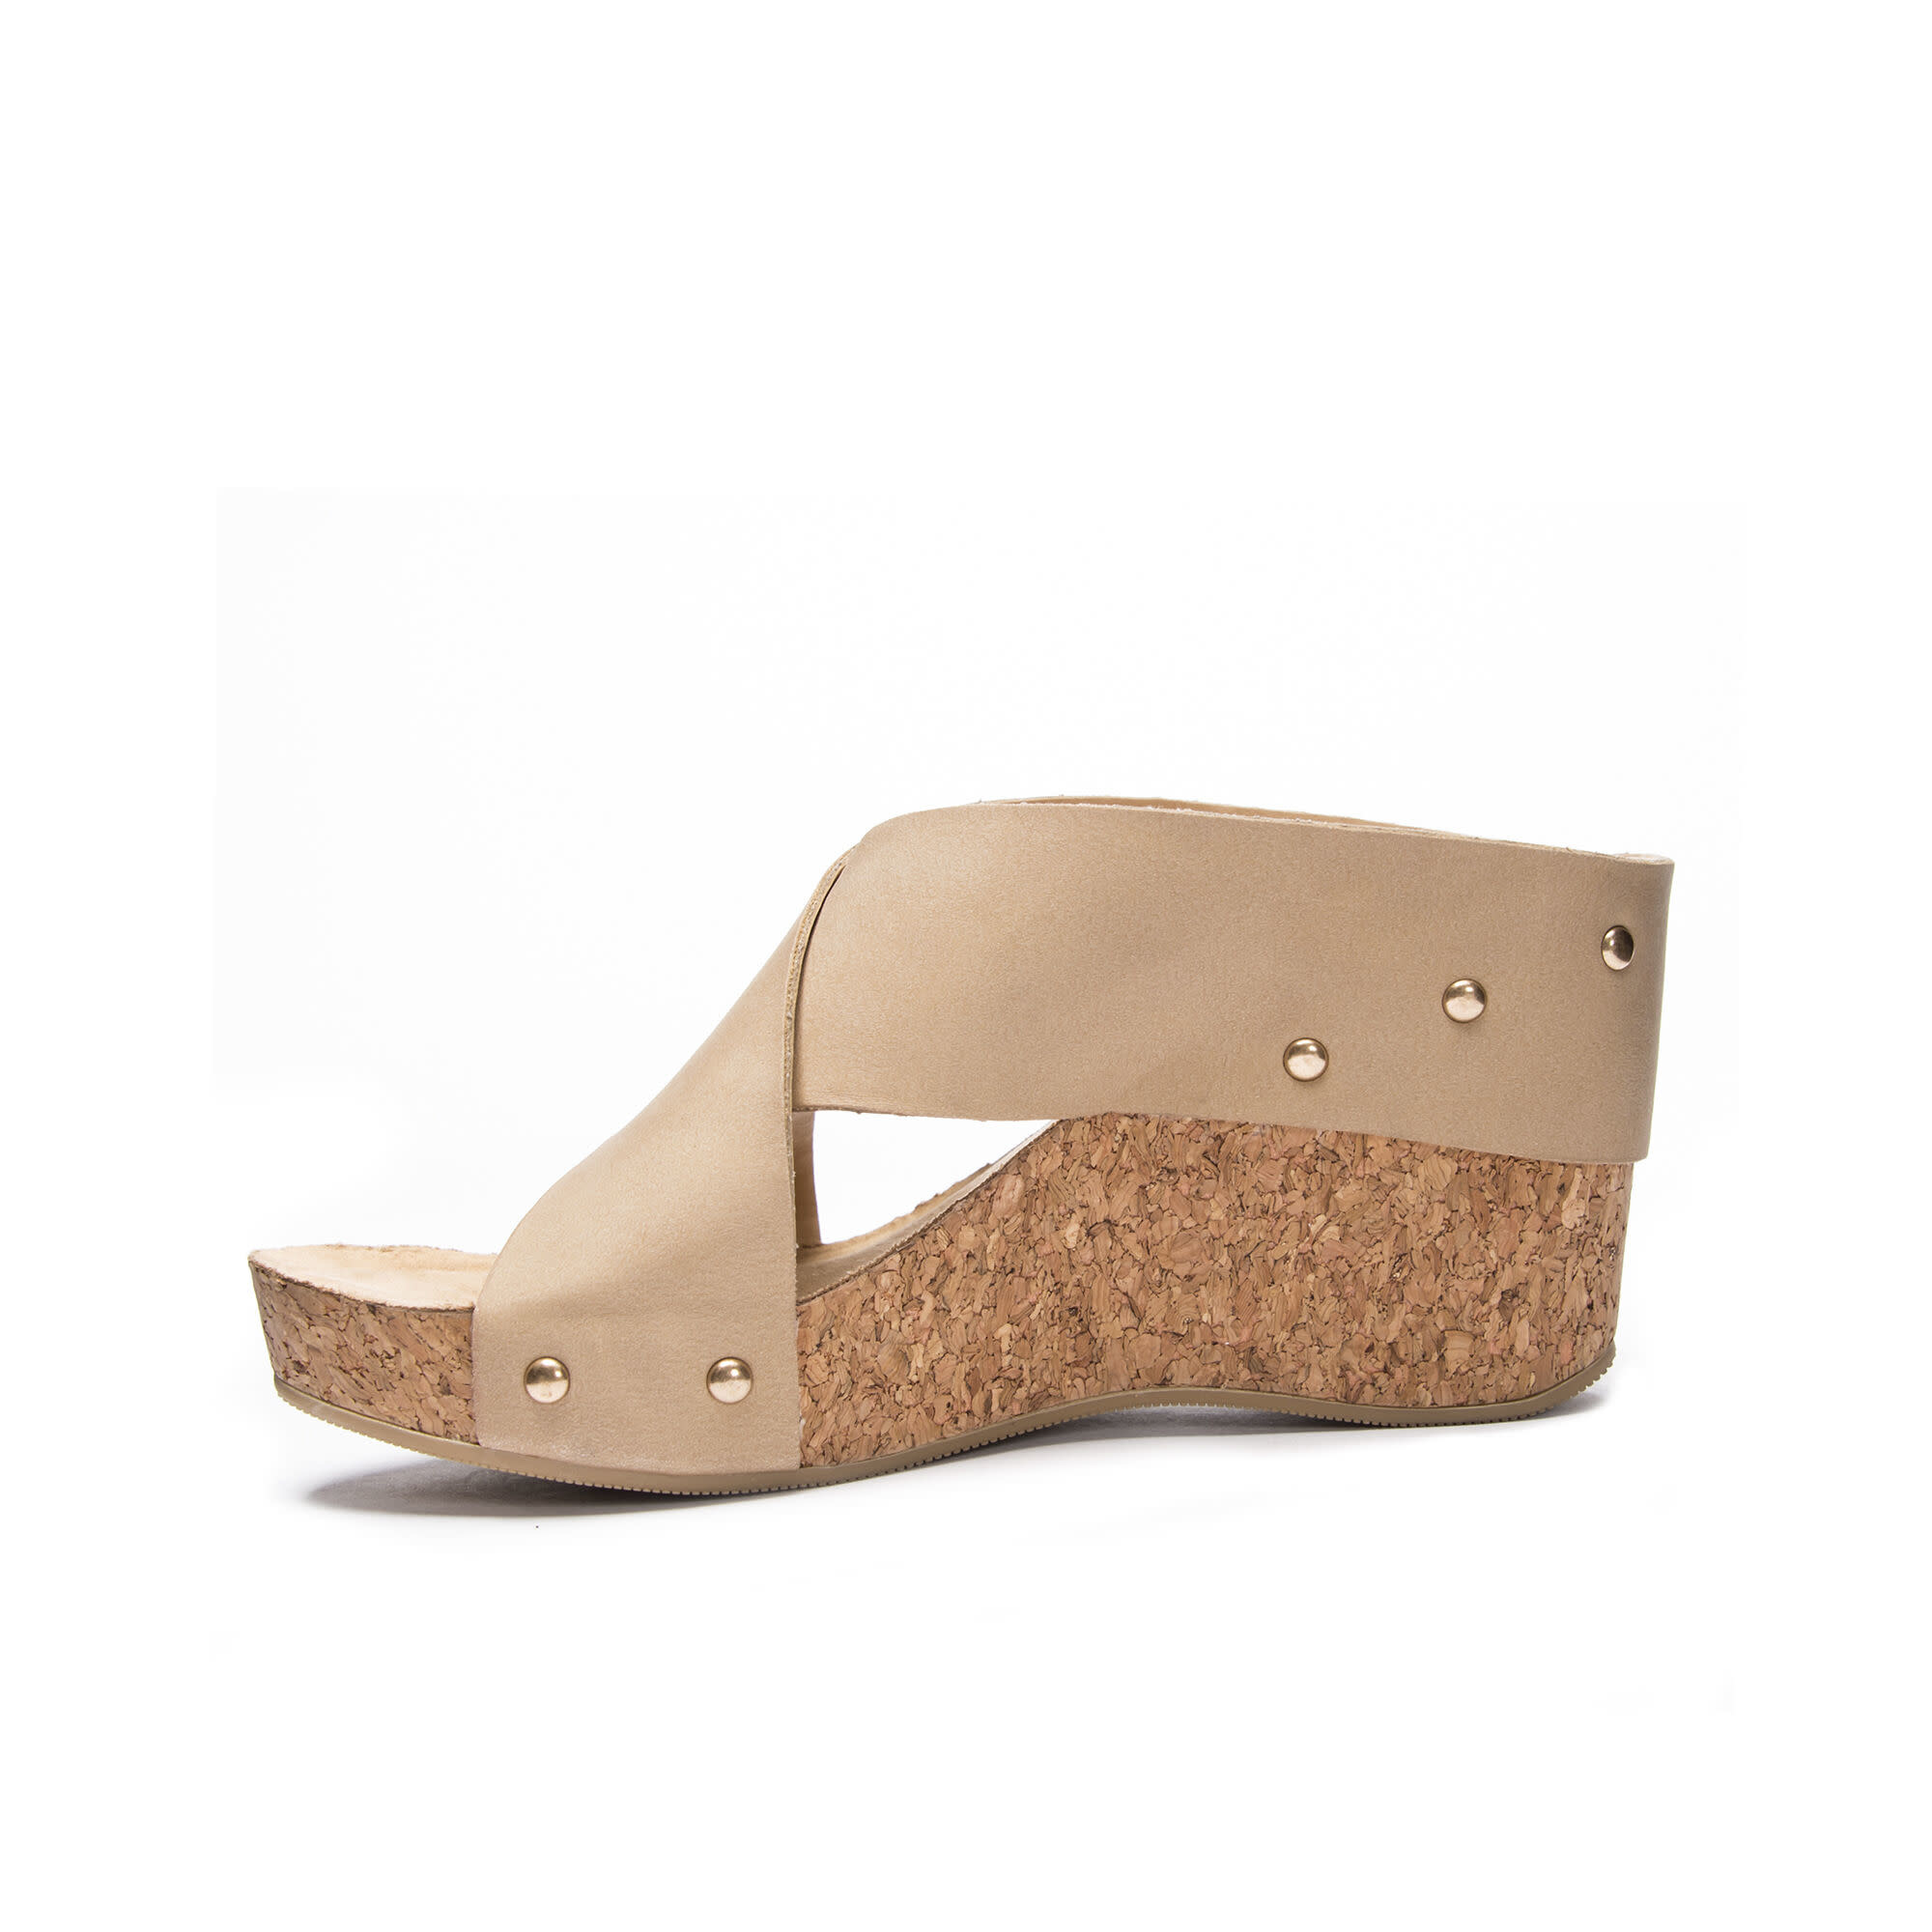 Chinese Laundry Abloom Wedge Sandal